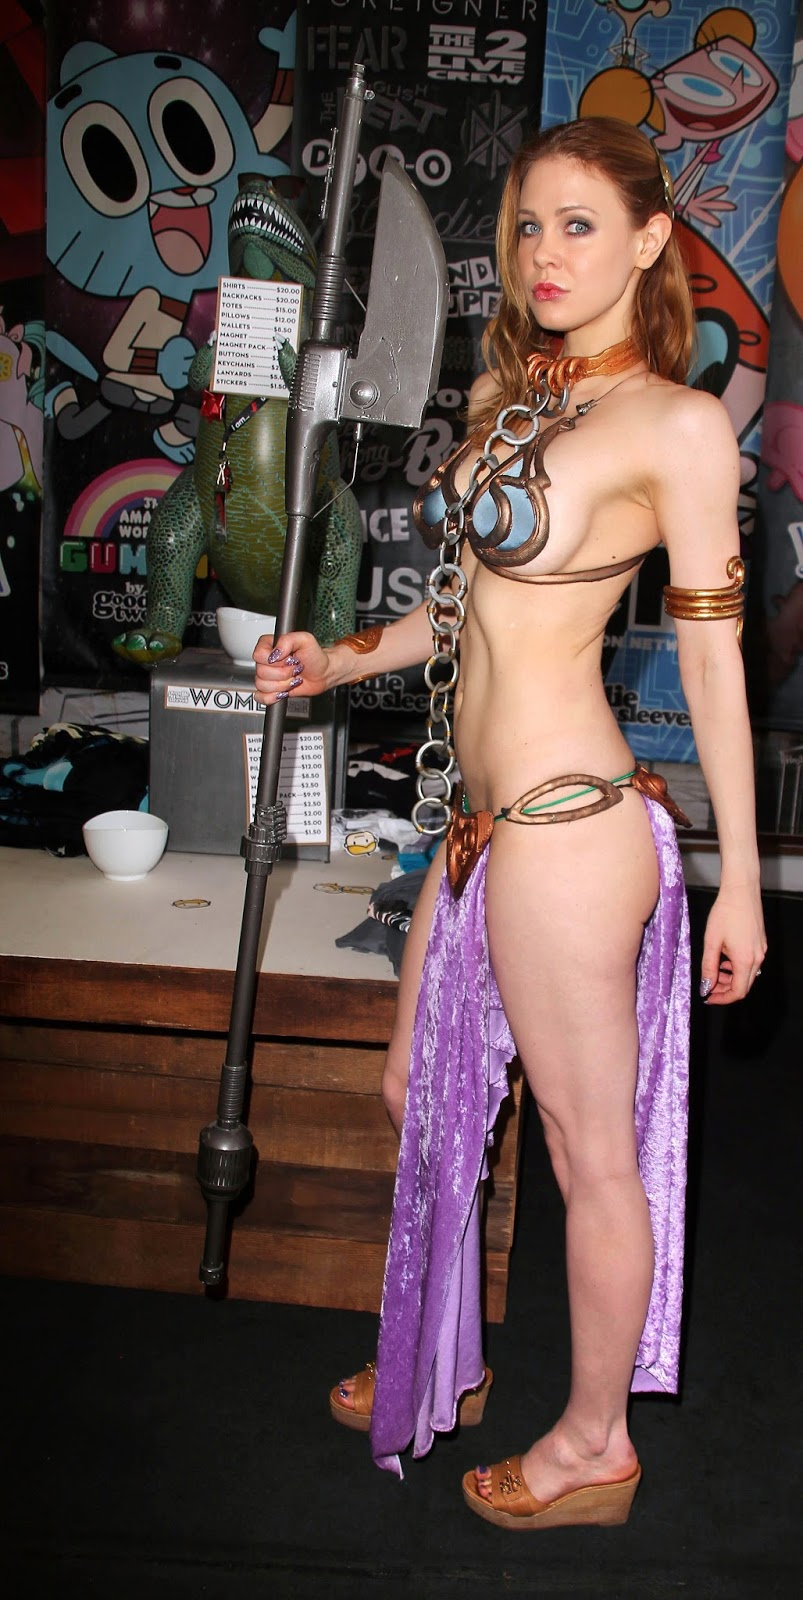 Princess Leia (Maitland Ward) Photoshoot at Meltdown Comics in LA